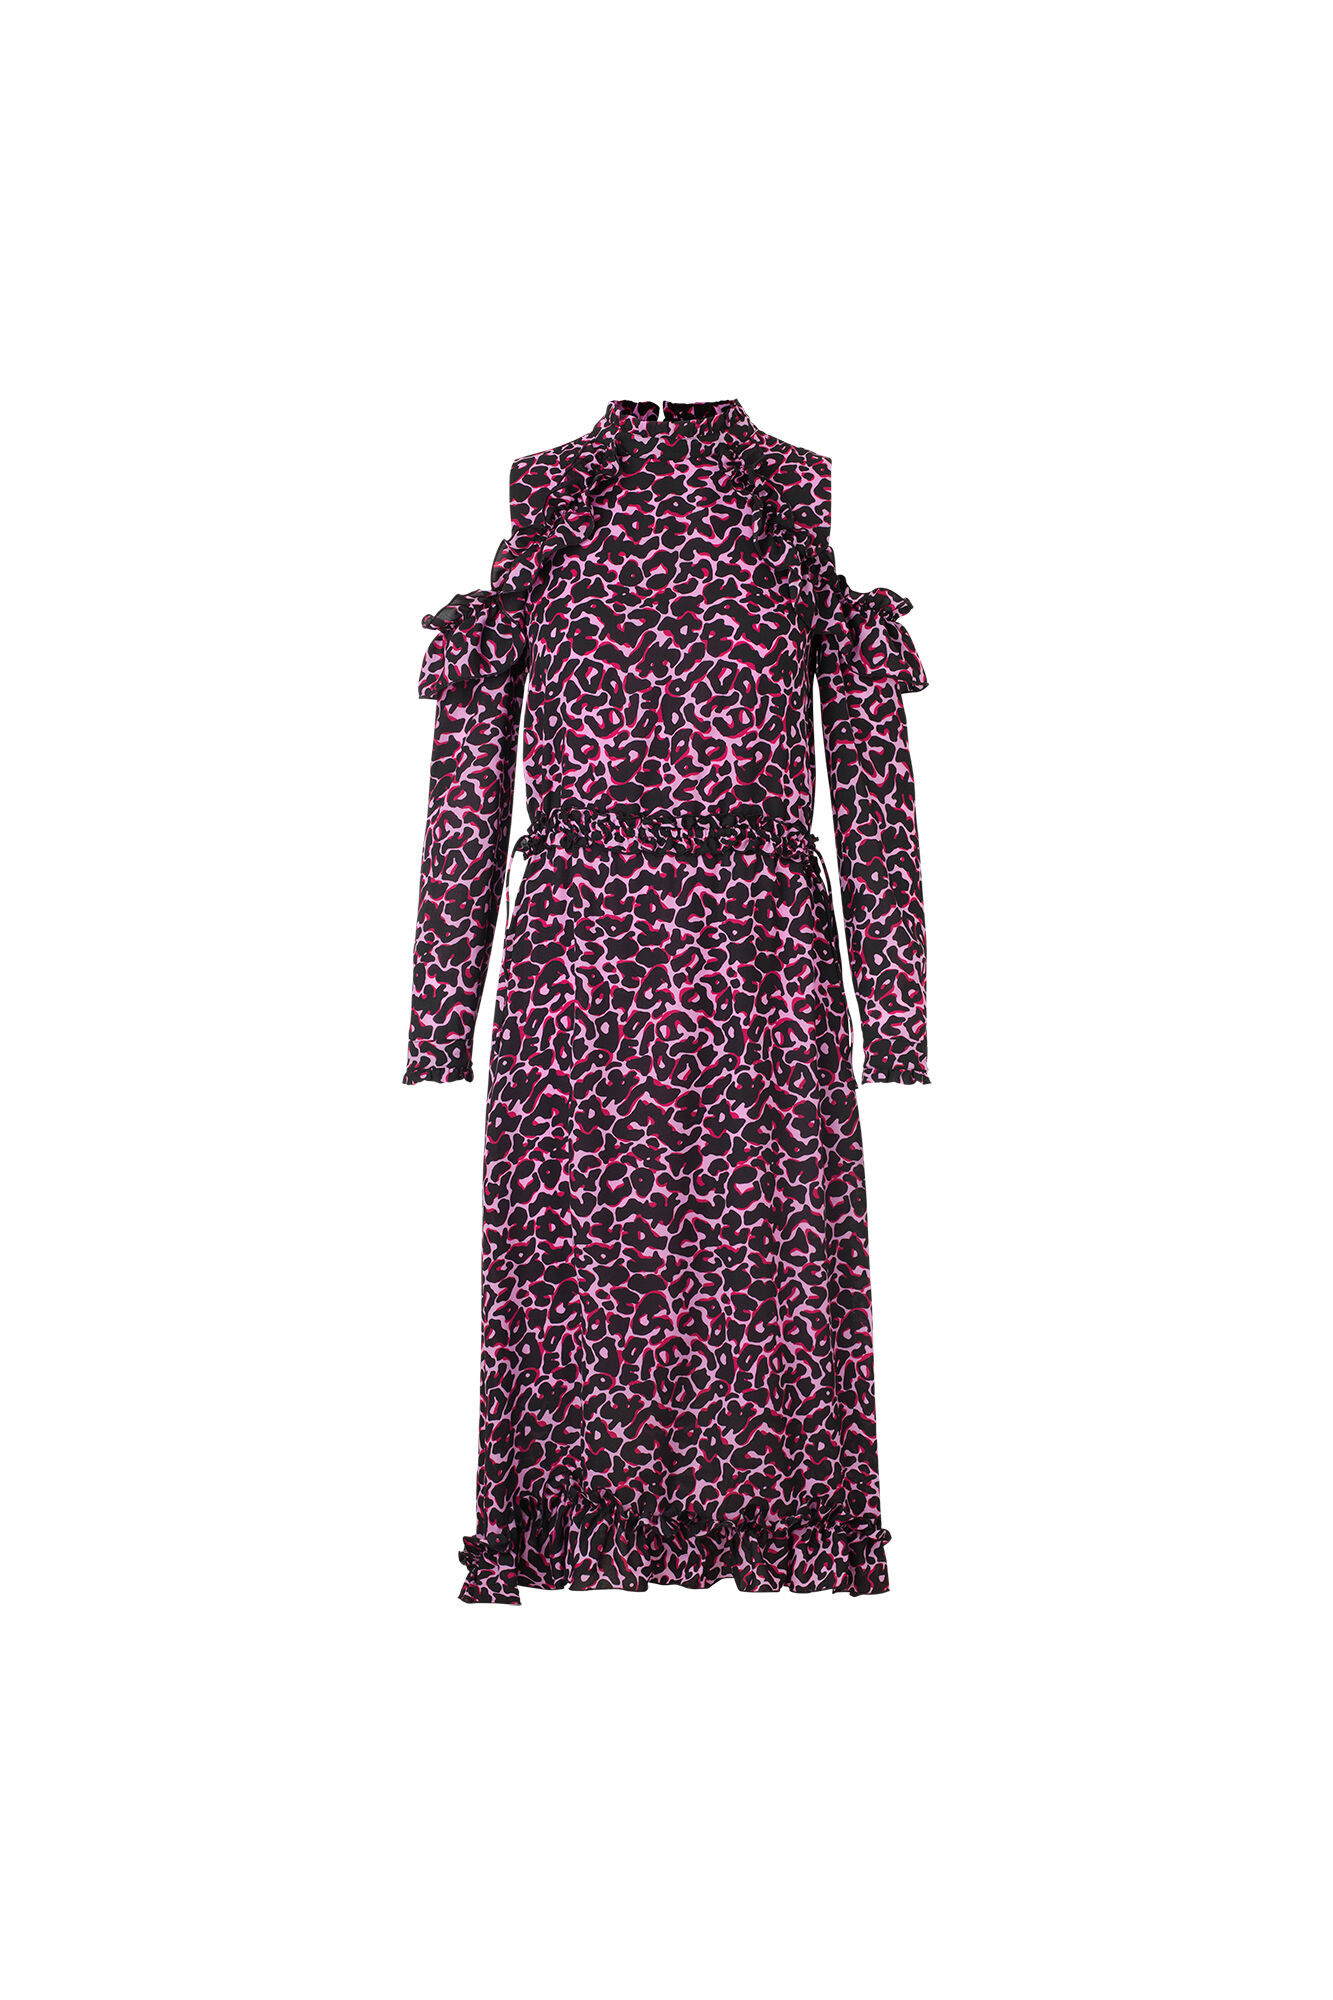 ENPLANET LS DRESS AOP 6465, PINK-BLACK LEO